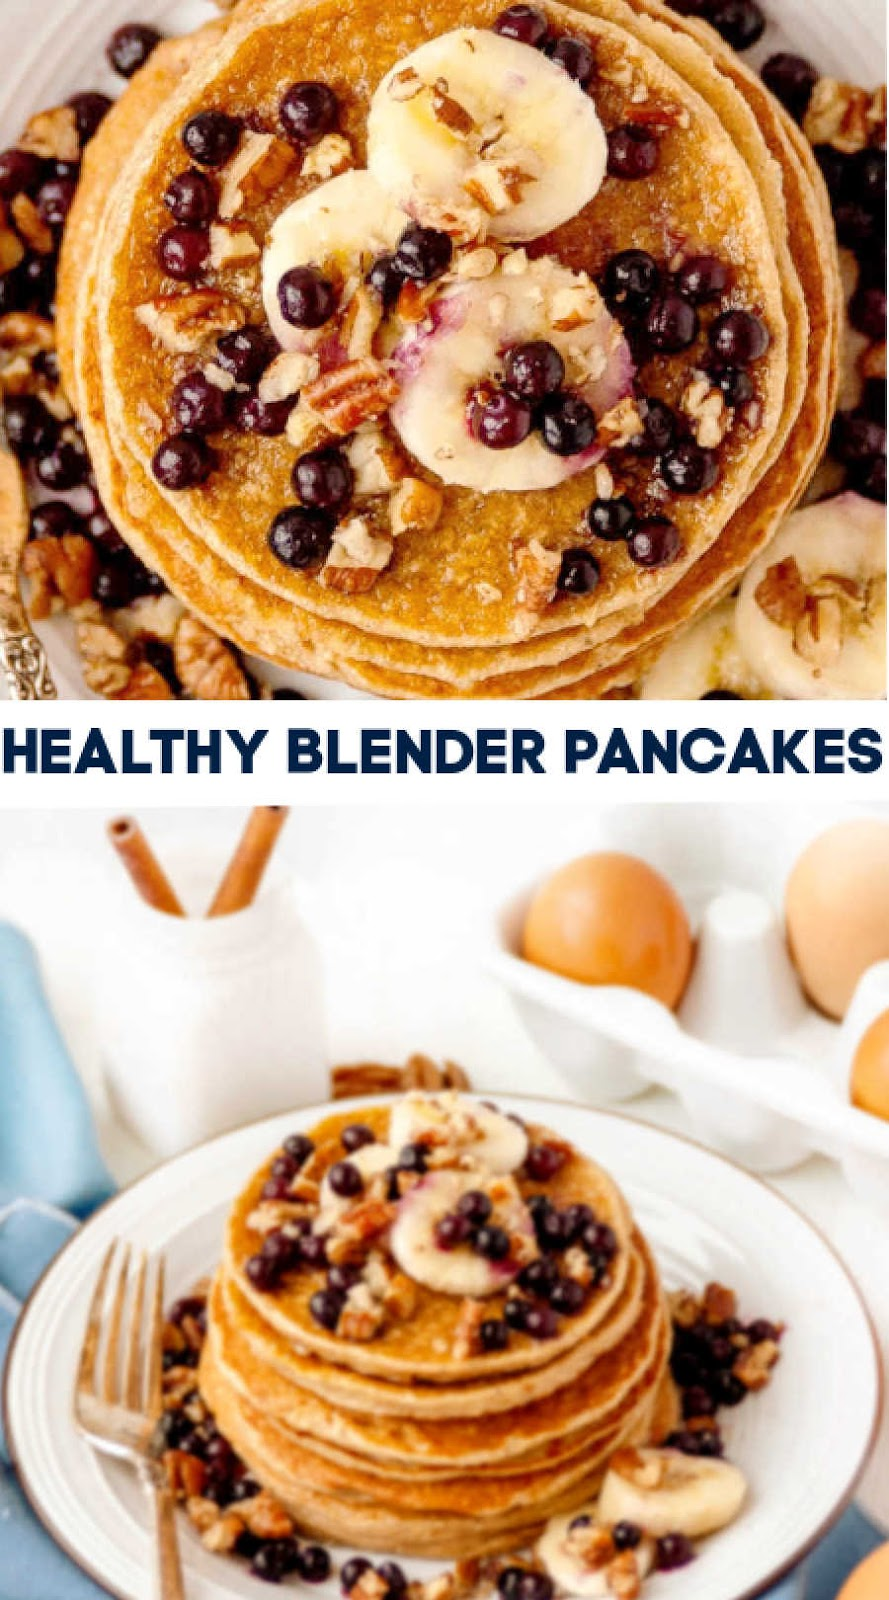 Make that breakfast staple, pancakes, healthier and super easy with these blender pancakes. There is no processed sugar,a hit of protein and lots of flavor to enjoy!